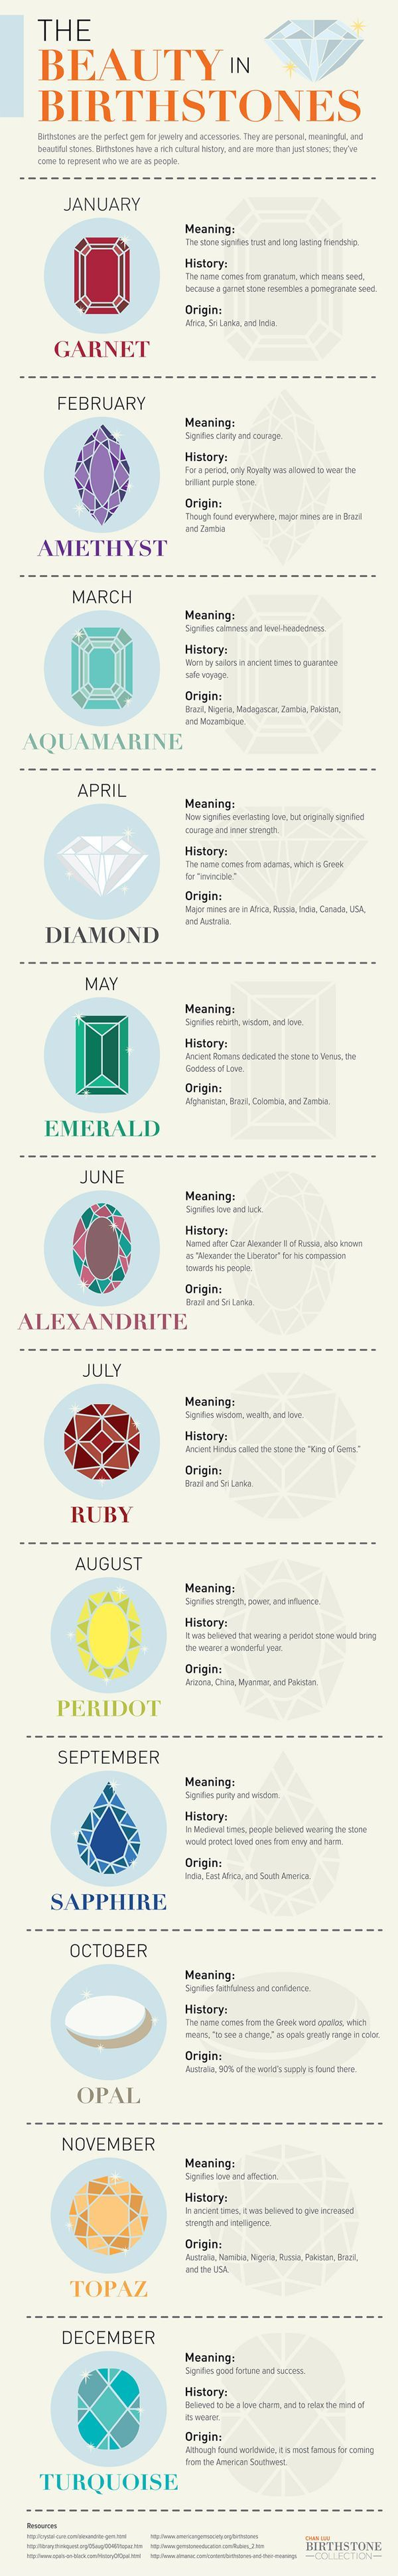 The beauty of birthstone jewelry awesome birthstone chart showing the beauty of birthstone jewelry awesome birthstone chart showing the meaning history and origin of nvjuhfo Gallery